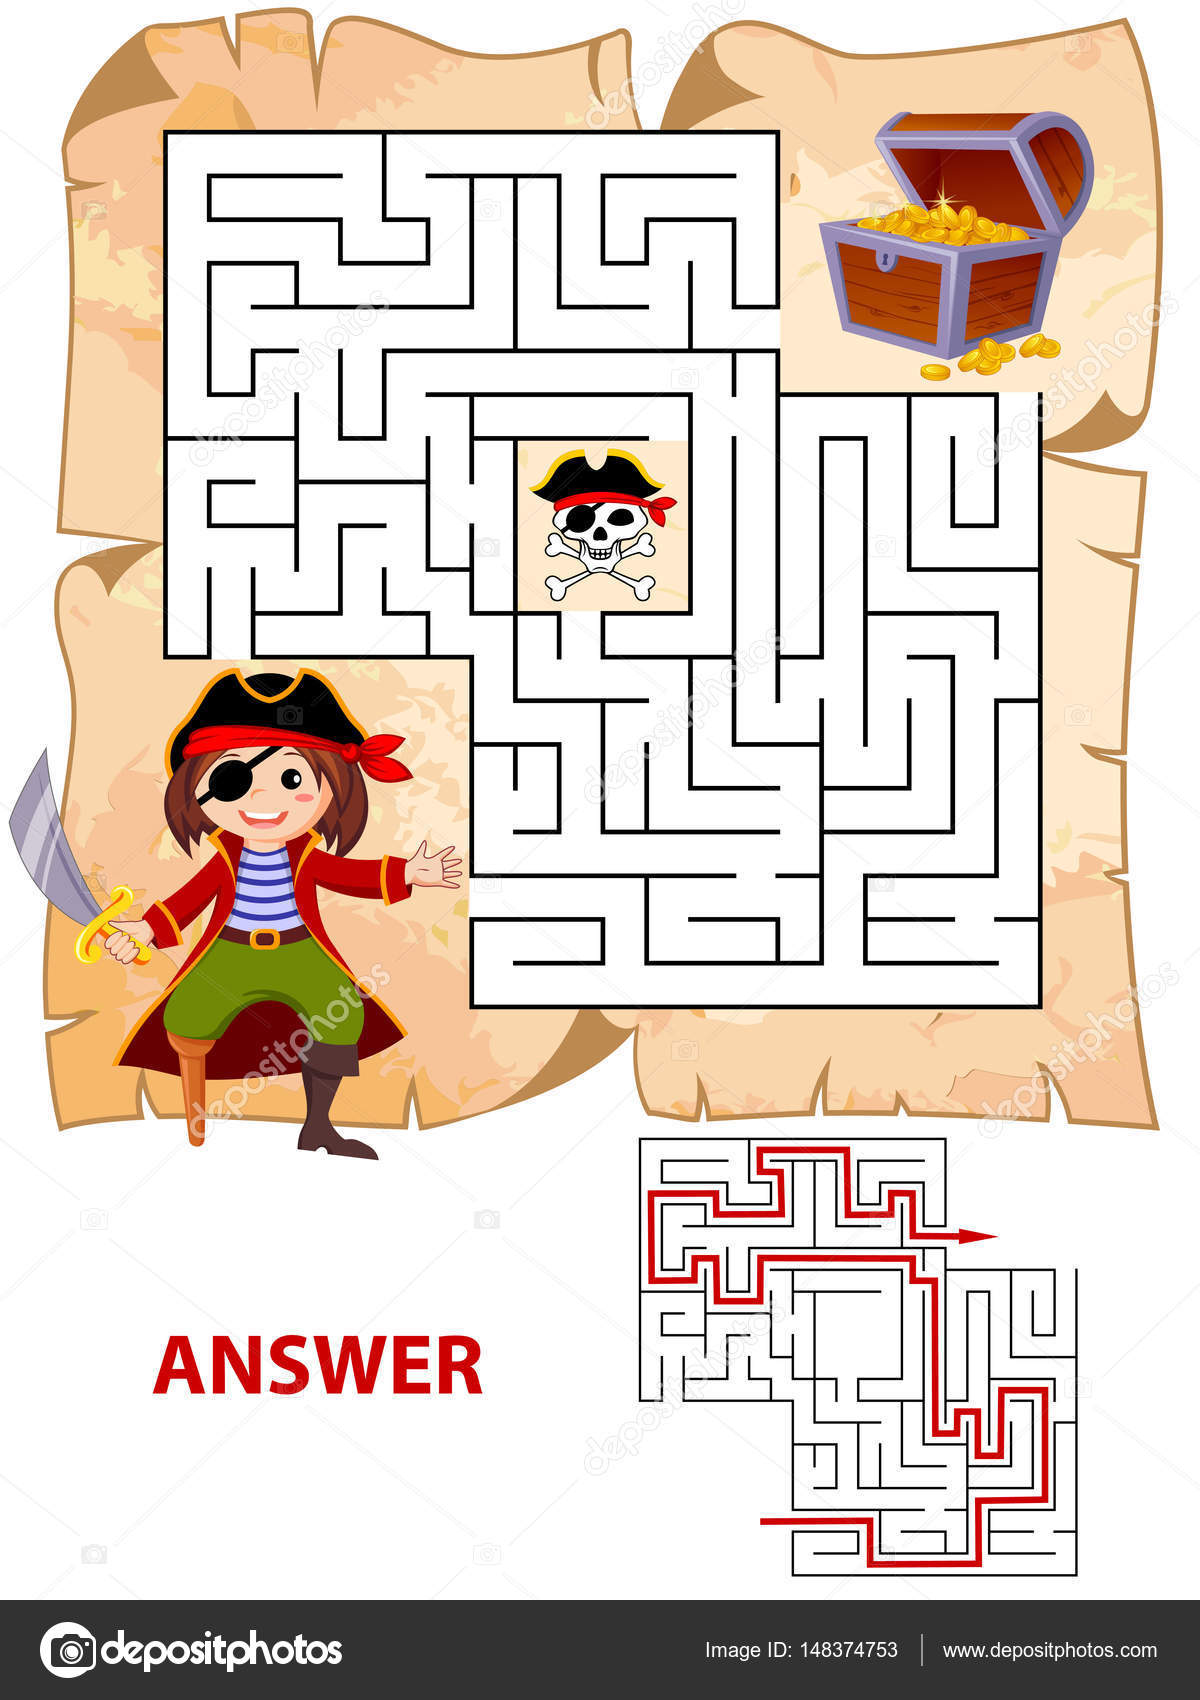 help pirate find path to treasure chest labyrinth maze game for